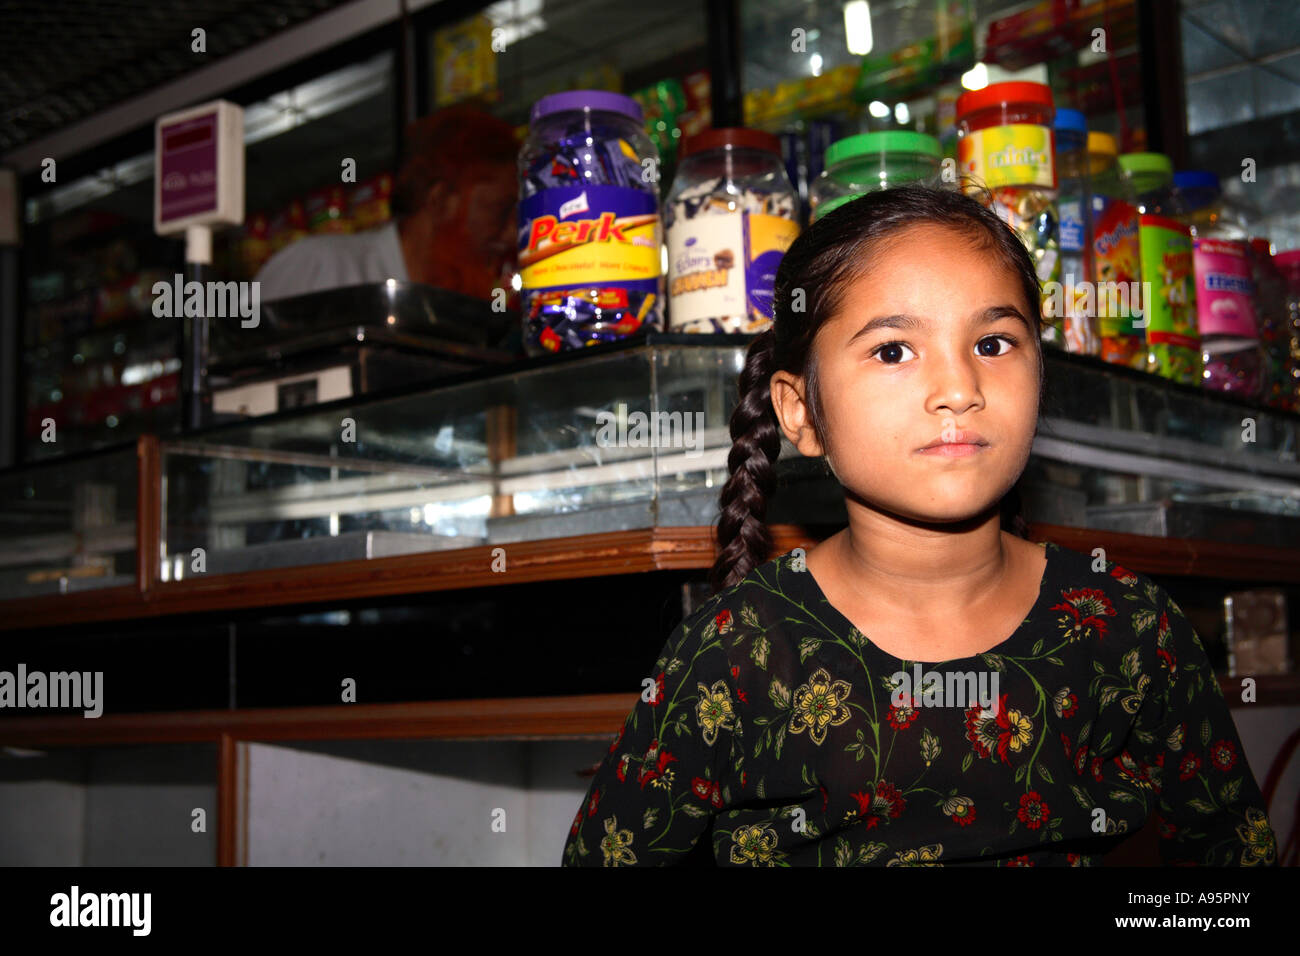 Young girl posing in confectionery shop, Ahmedabad, Gujarat, India - Stock Image